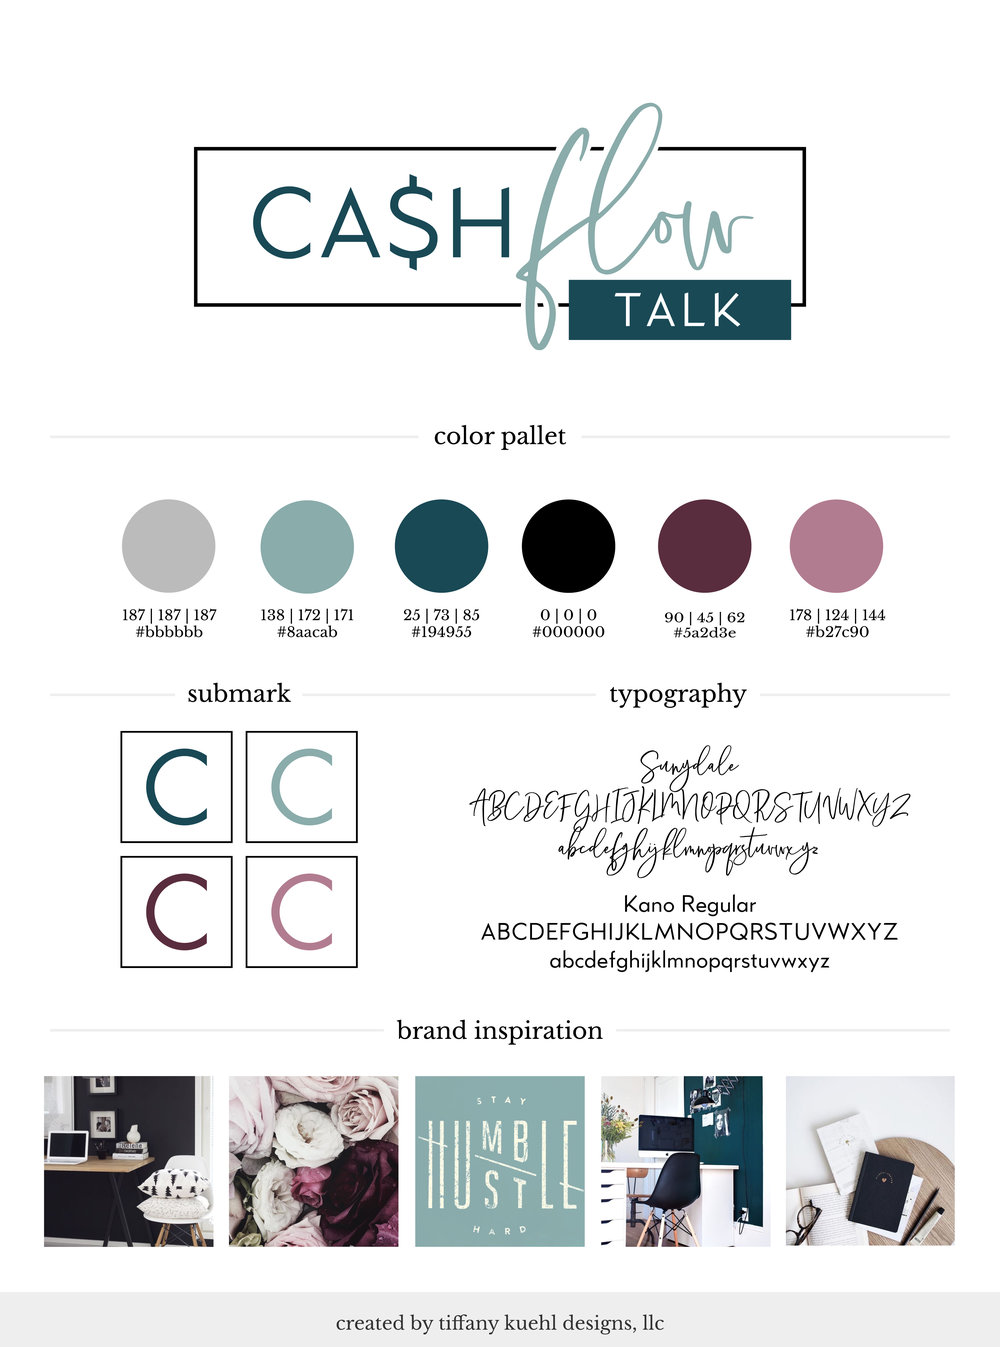 Cash Flow Talk Brand Board | Tiffay Kuehl Designs  I love how the Cash Flow Talk brand turned out! A #brandboard is your branding details at a glance, and I am dying over these details!  #branding #logodesign #colorinspiration #moodboard #brandinspiration #brandstyleguide #brandboard